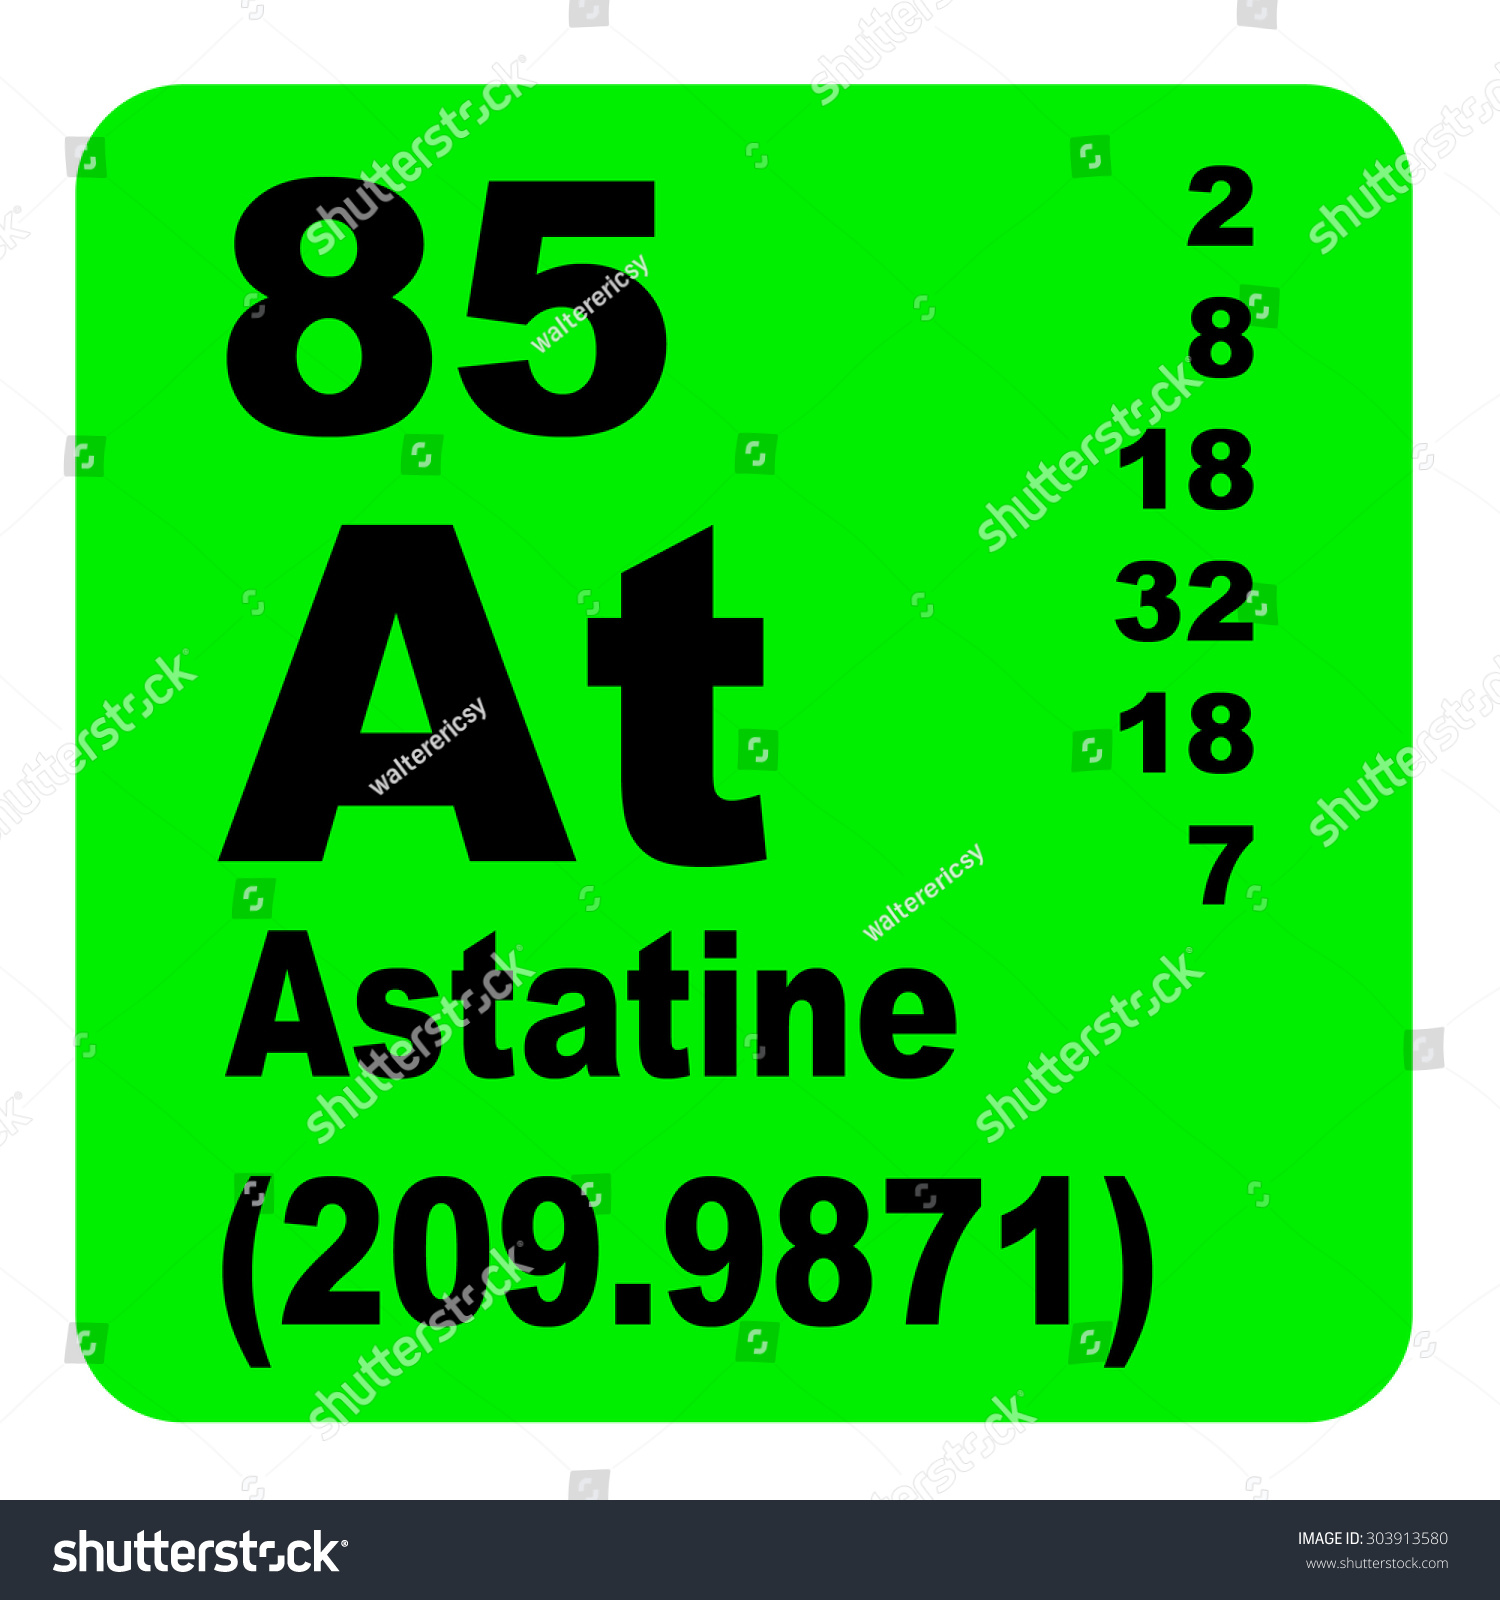 Astatine periodic table elements stock illustration 303913580 astatine periodic table of elements gamestrikefo Image collections